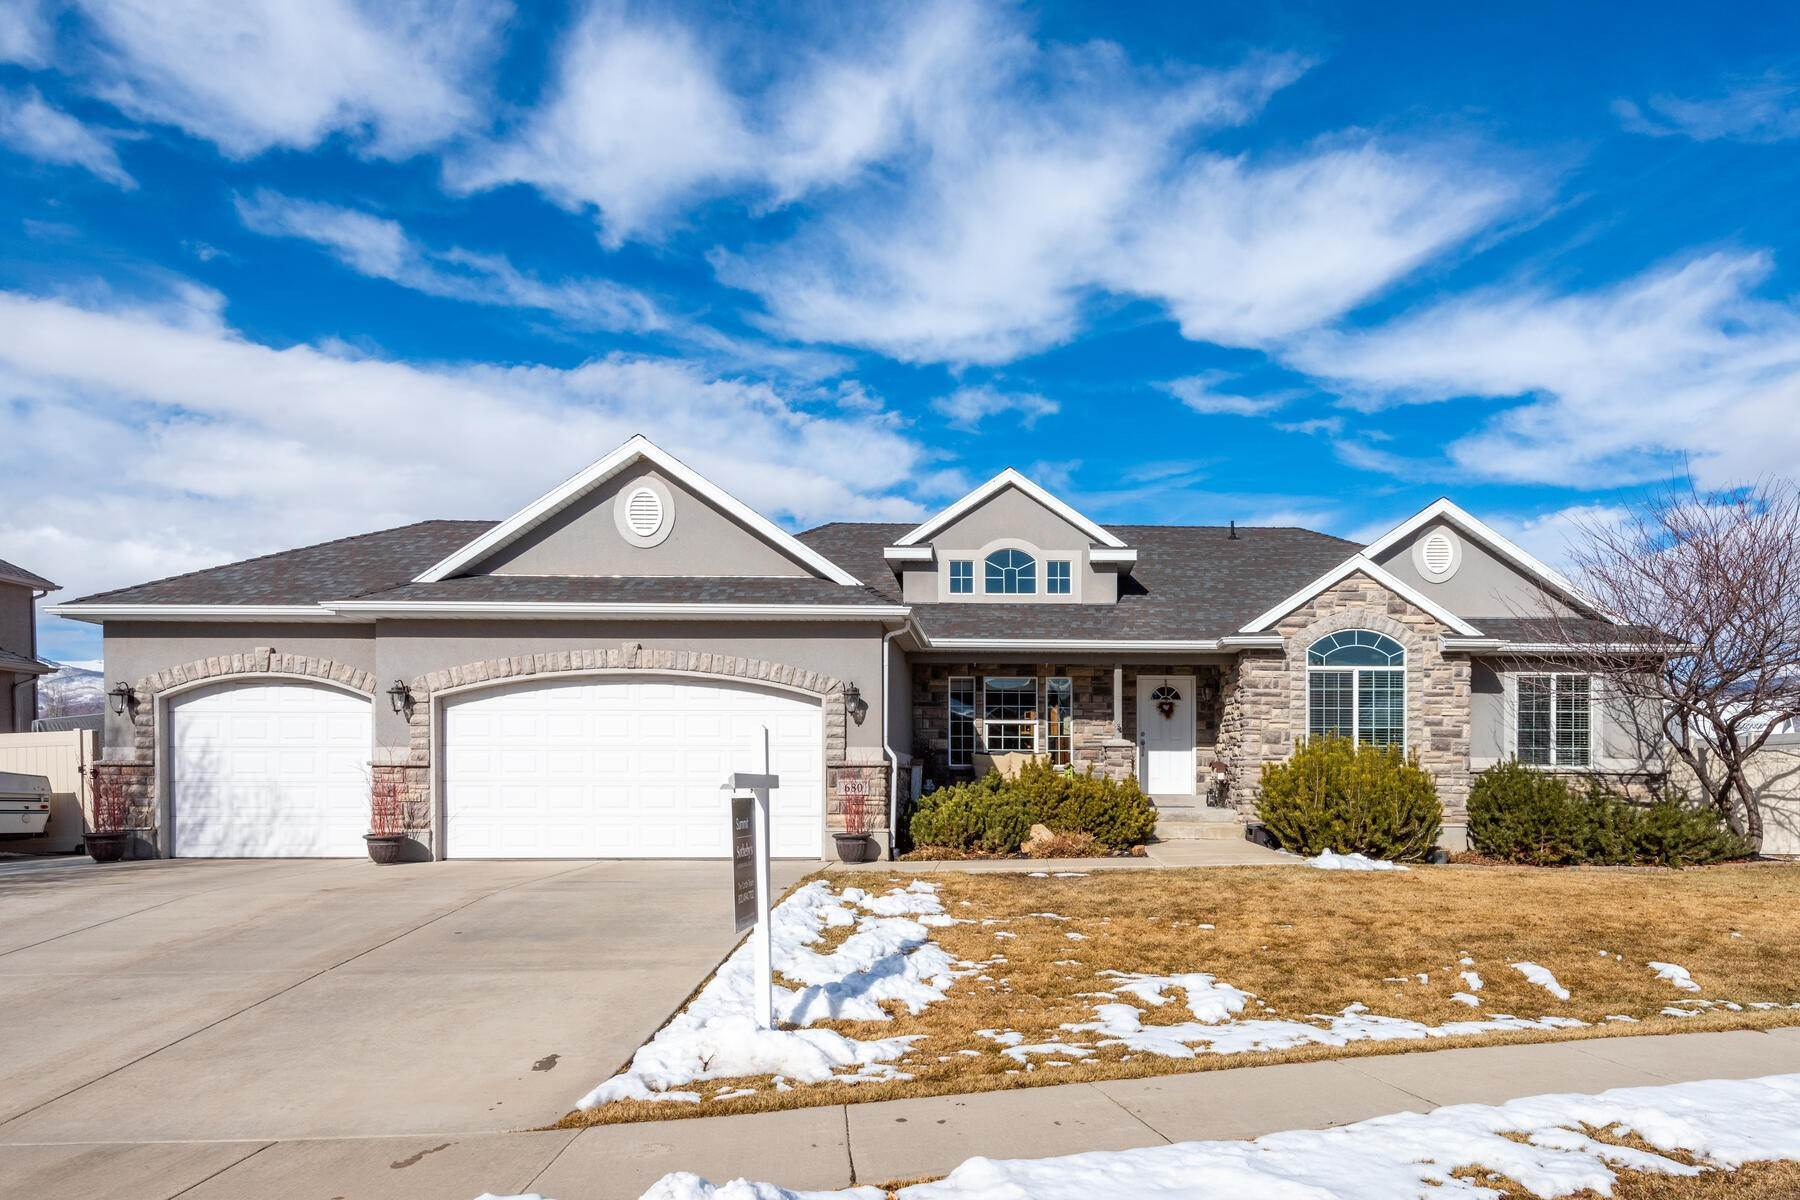 Single Family Homes for Sale at Gorgeous, Immaculate Home with Sunny and Spacious Open Floor Plan! 680 W 1090 S Heber, Utah 84032 United States